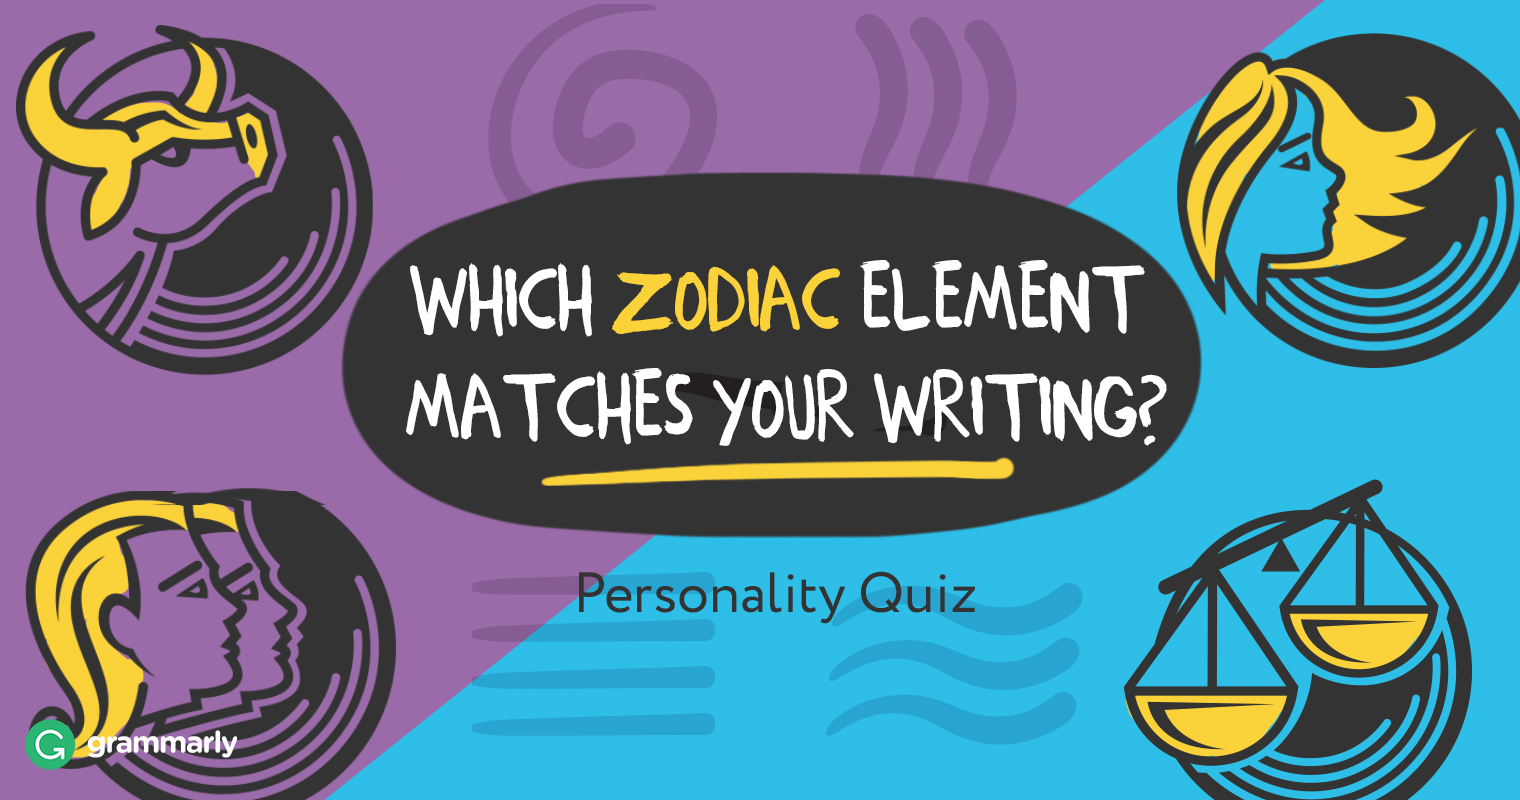 What's Your Writing Zodiac? Quiz